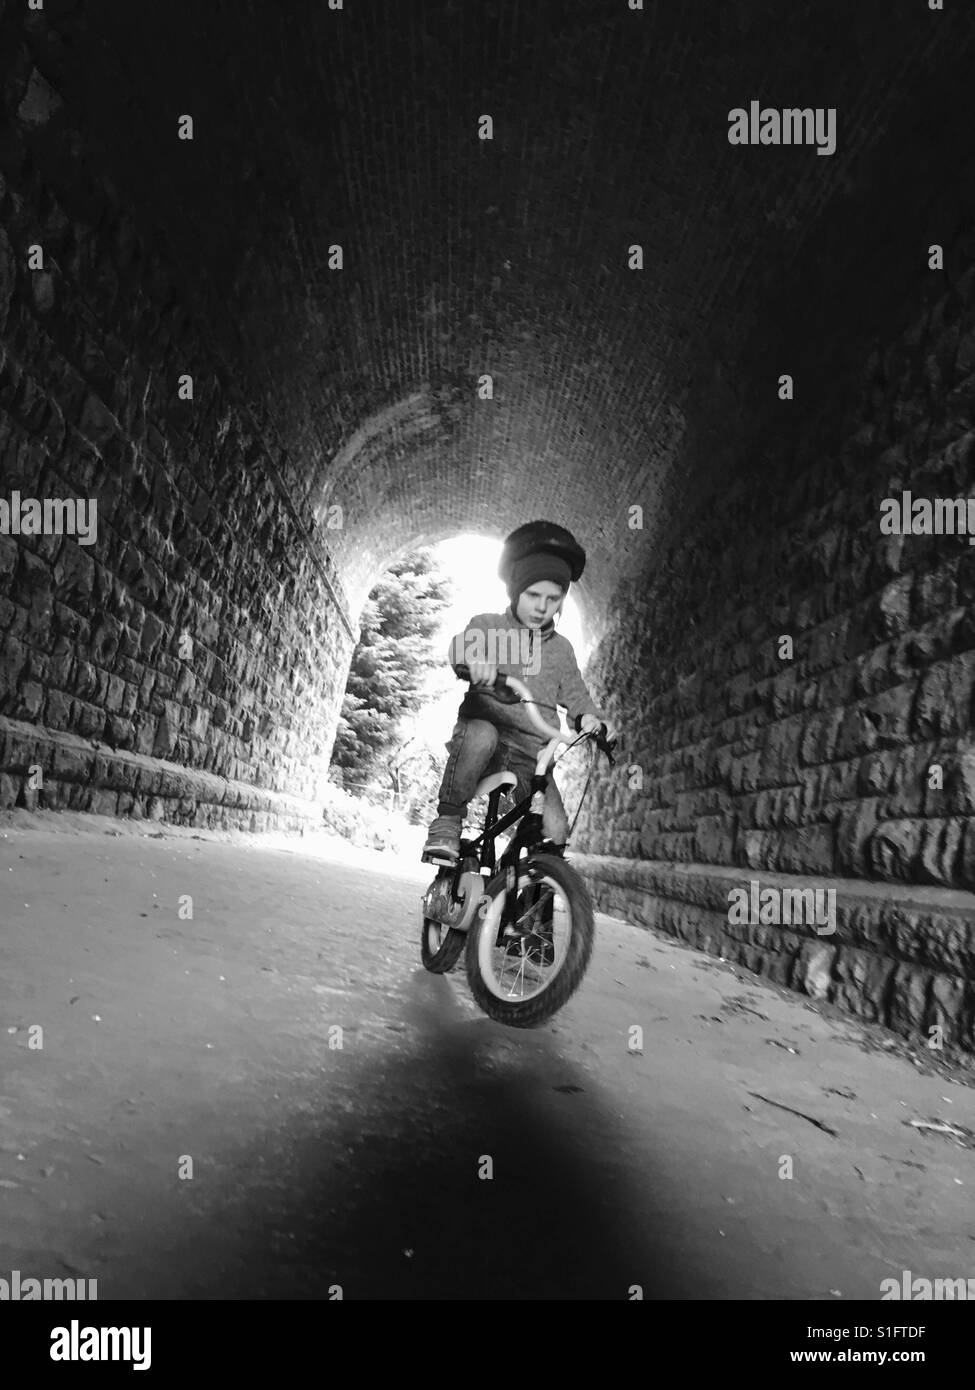 Boy riding a bicycle through tunnel - Stock Image